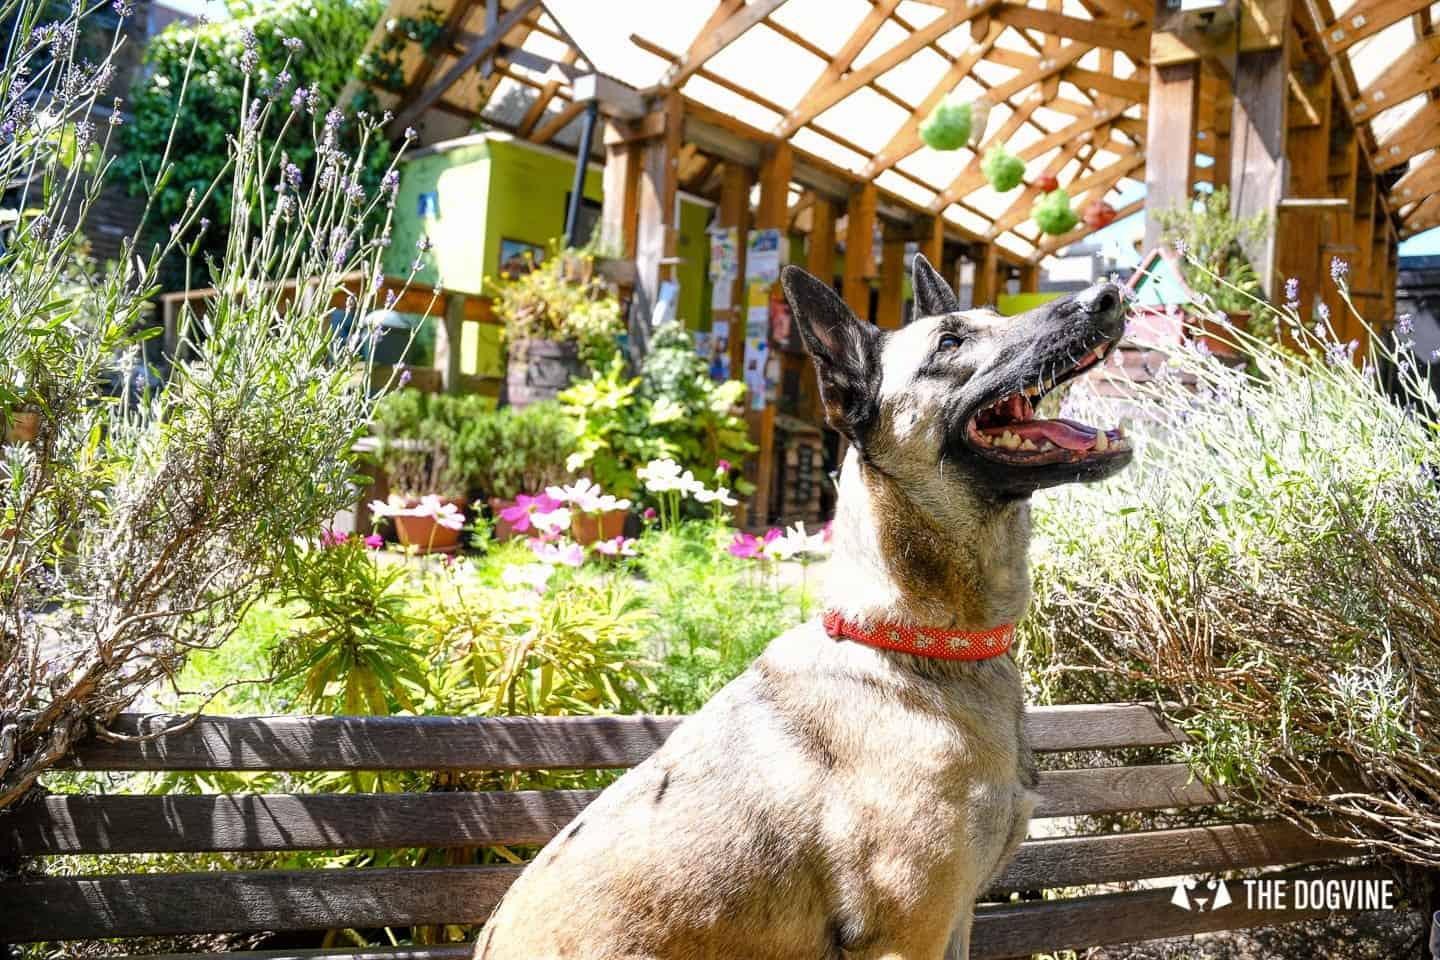 Dog-friendly London The Best Free Dog-friendly Things To Do - Dalston Eastern Curve Garden 3